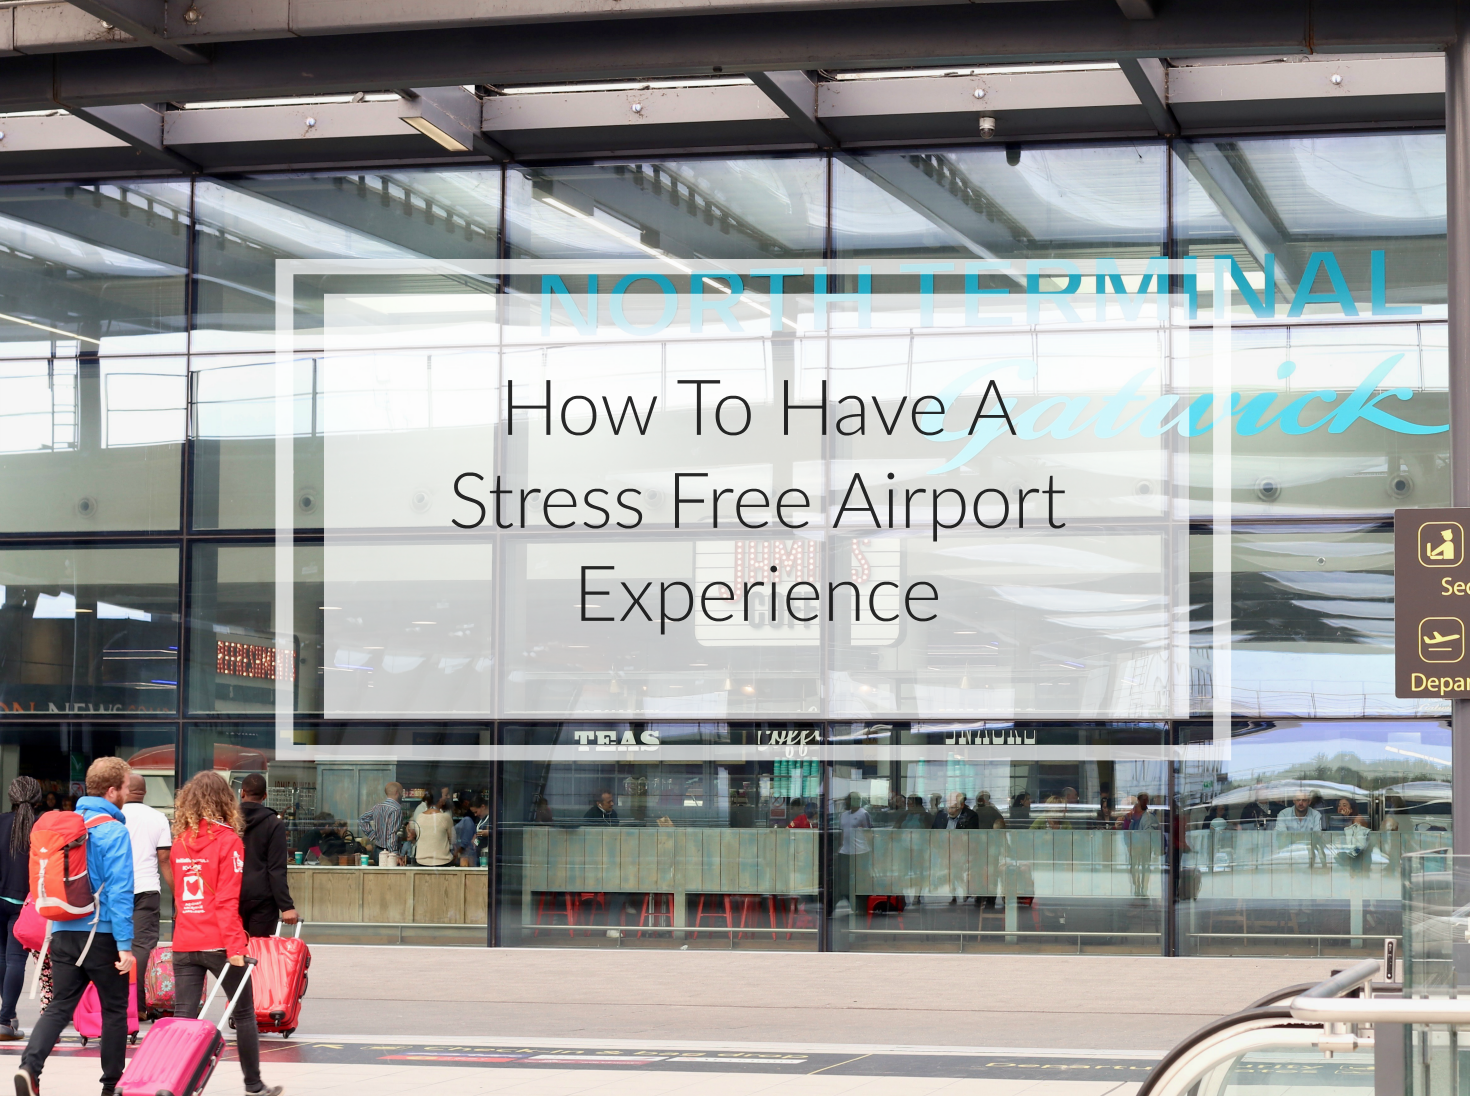 How To Have A Stress Free Airport Experience